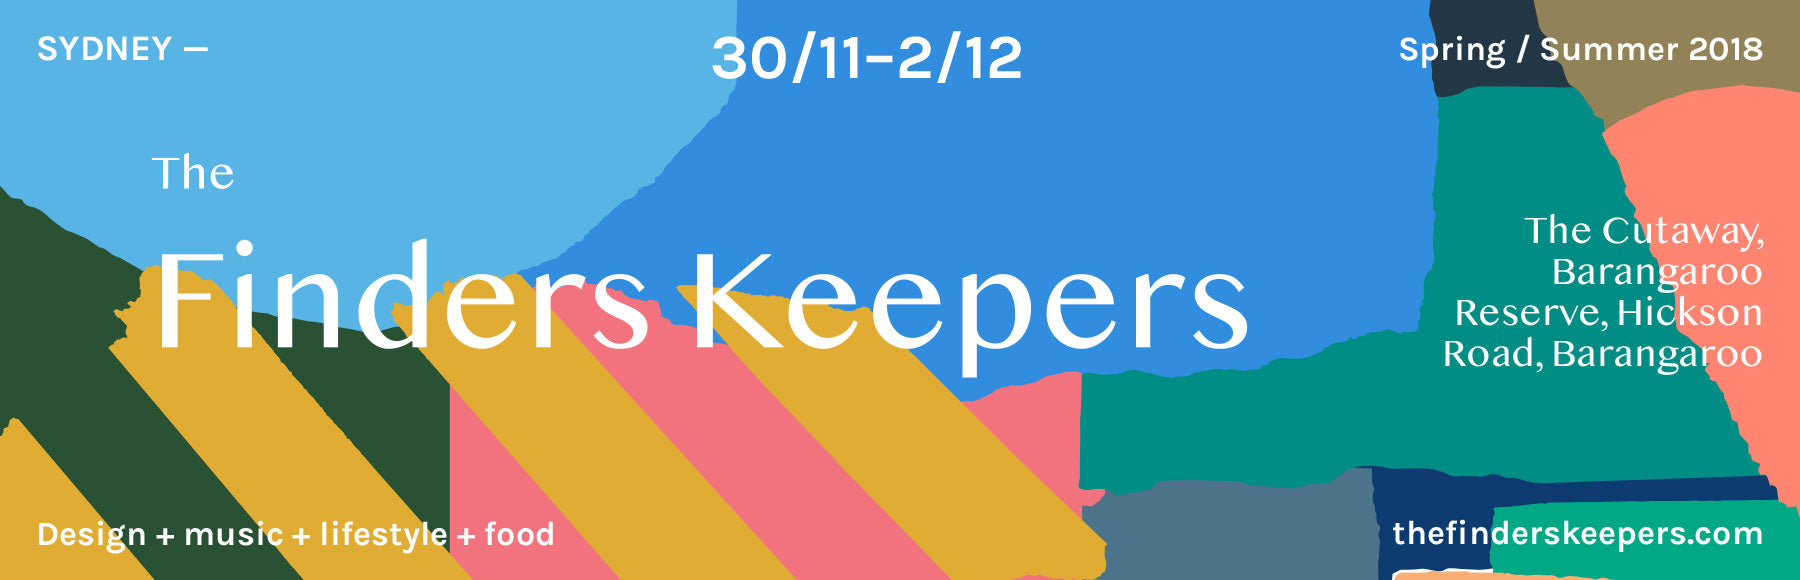 See us at Sydney Finders Keepers 30 Nov - 2 Dec 2018 at The Cutaway, Barangaroo Reserve